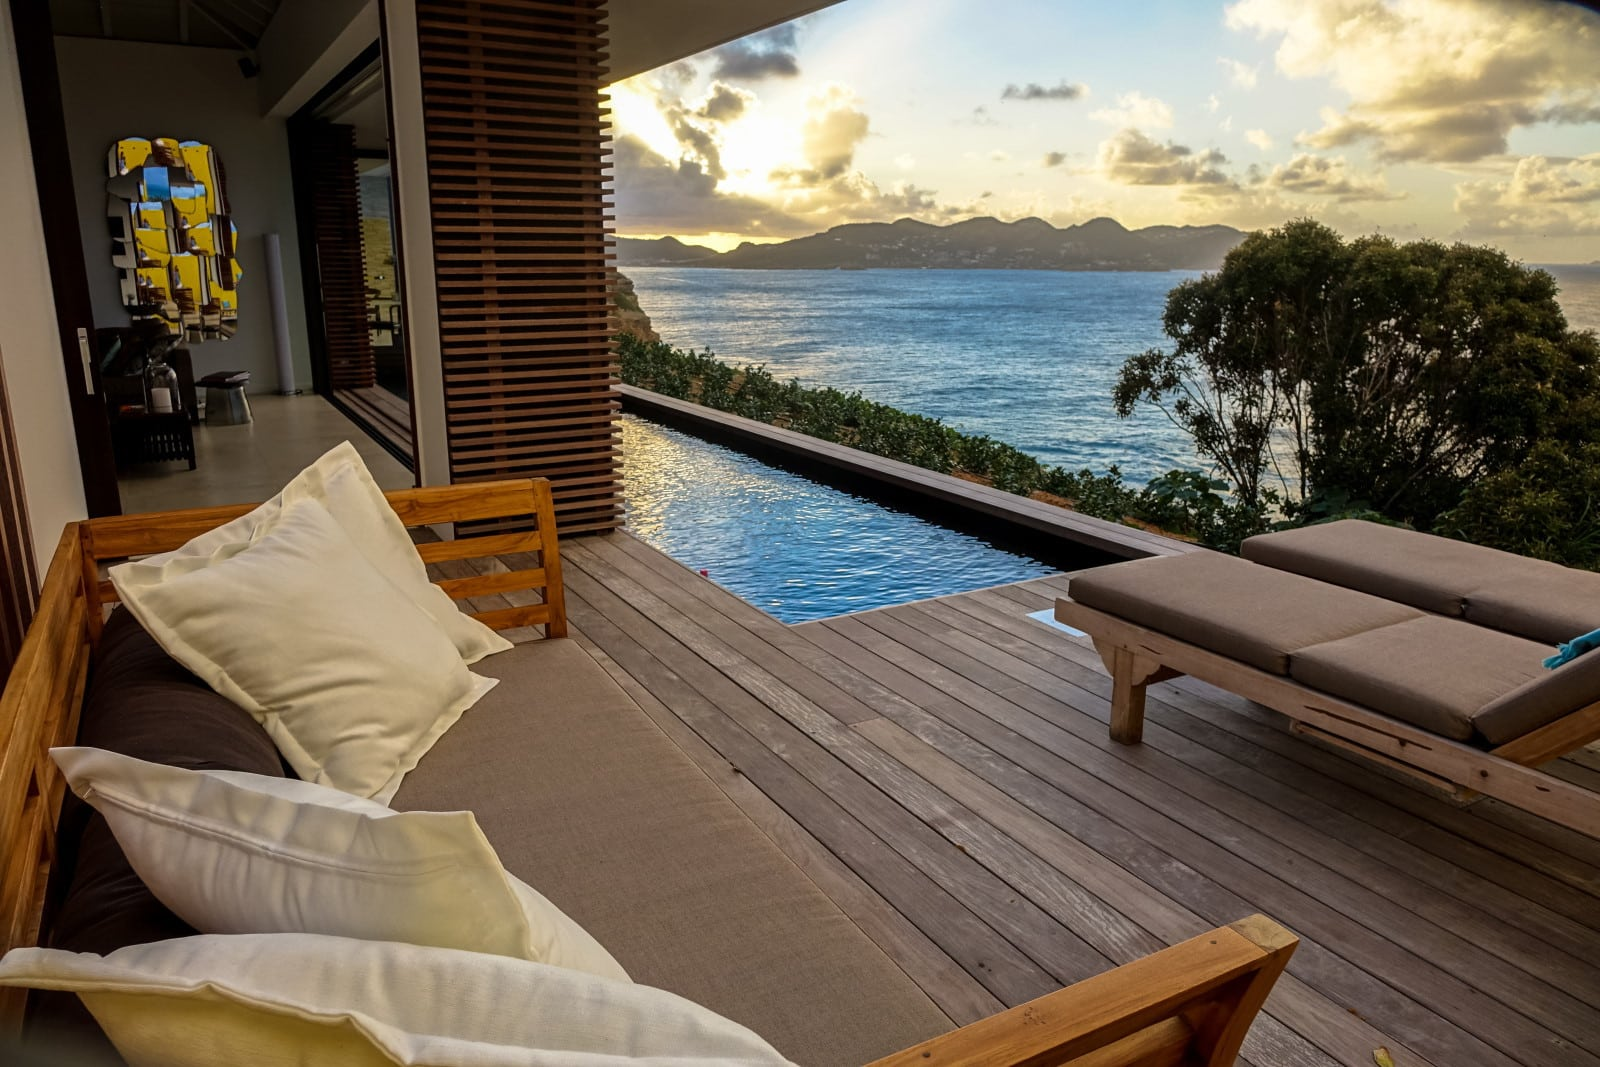 Romantic sunset view in the pool and sundeck of my villa BelAmour, St. Barths